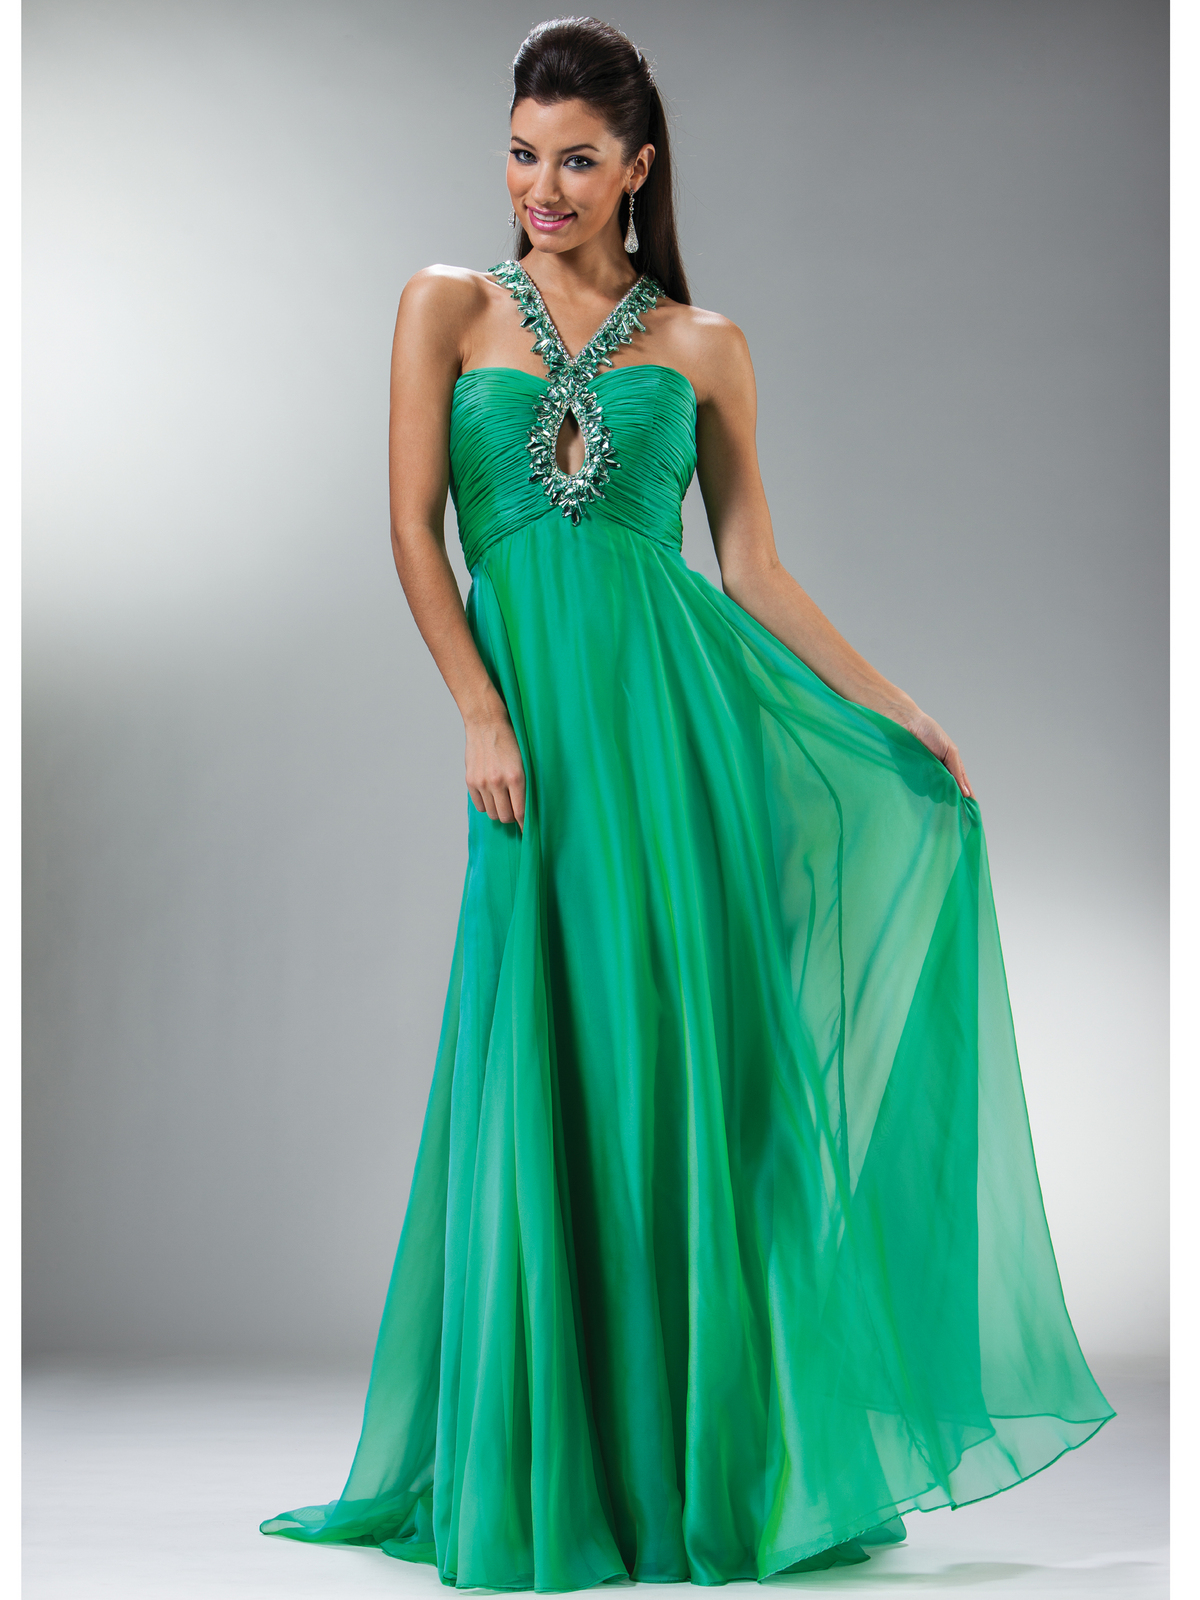 Jeweled Crisscross Keyhole Halter Prom Dress | Sung Boutique L.A.